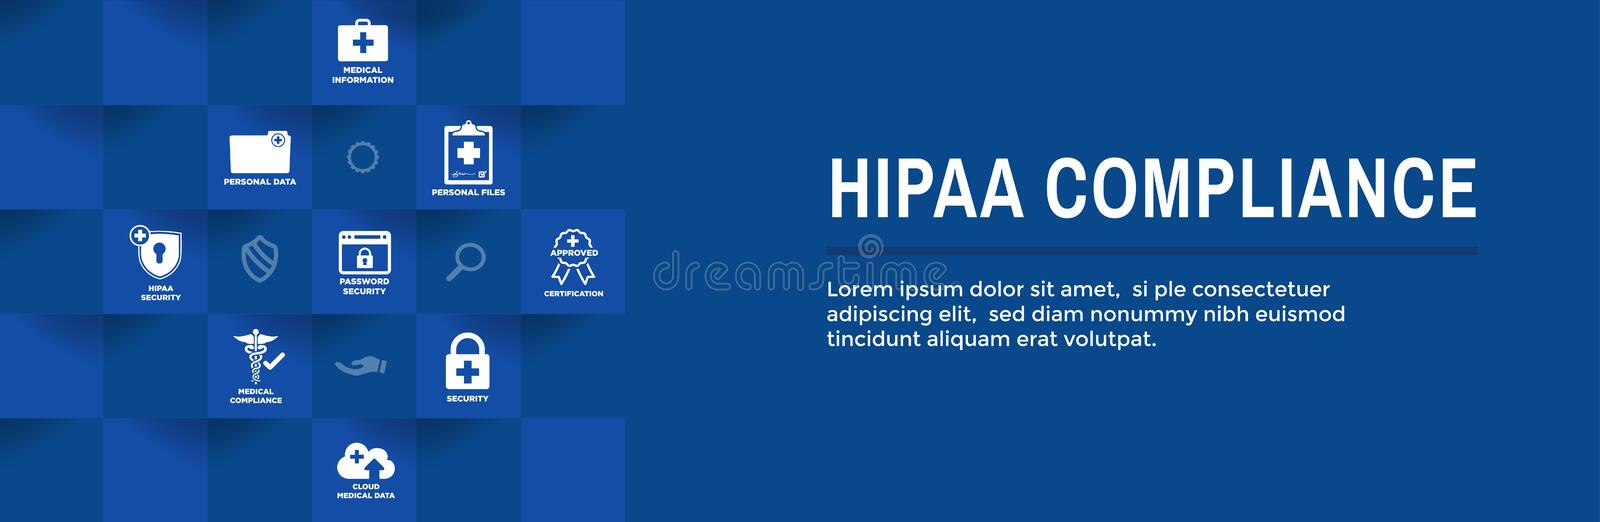 HIPAA Compliance Web Banner Header - Medical Icon Set and text stock illustration